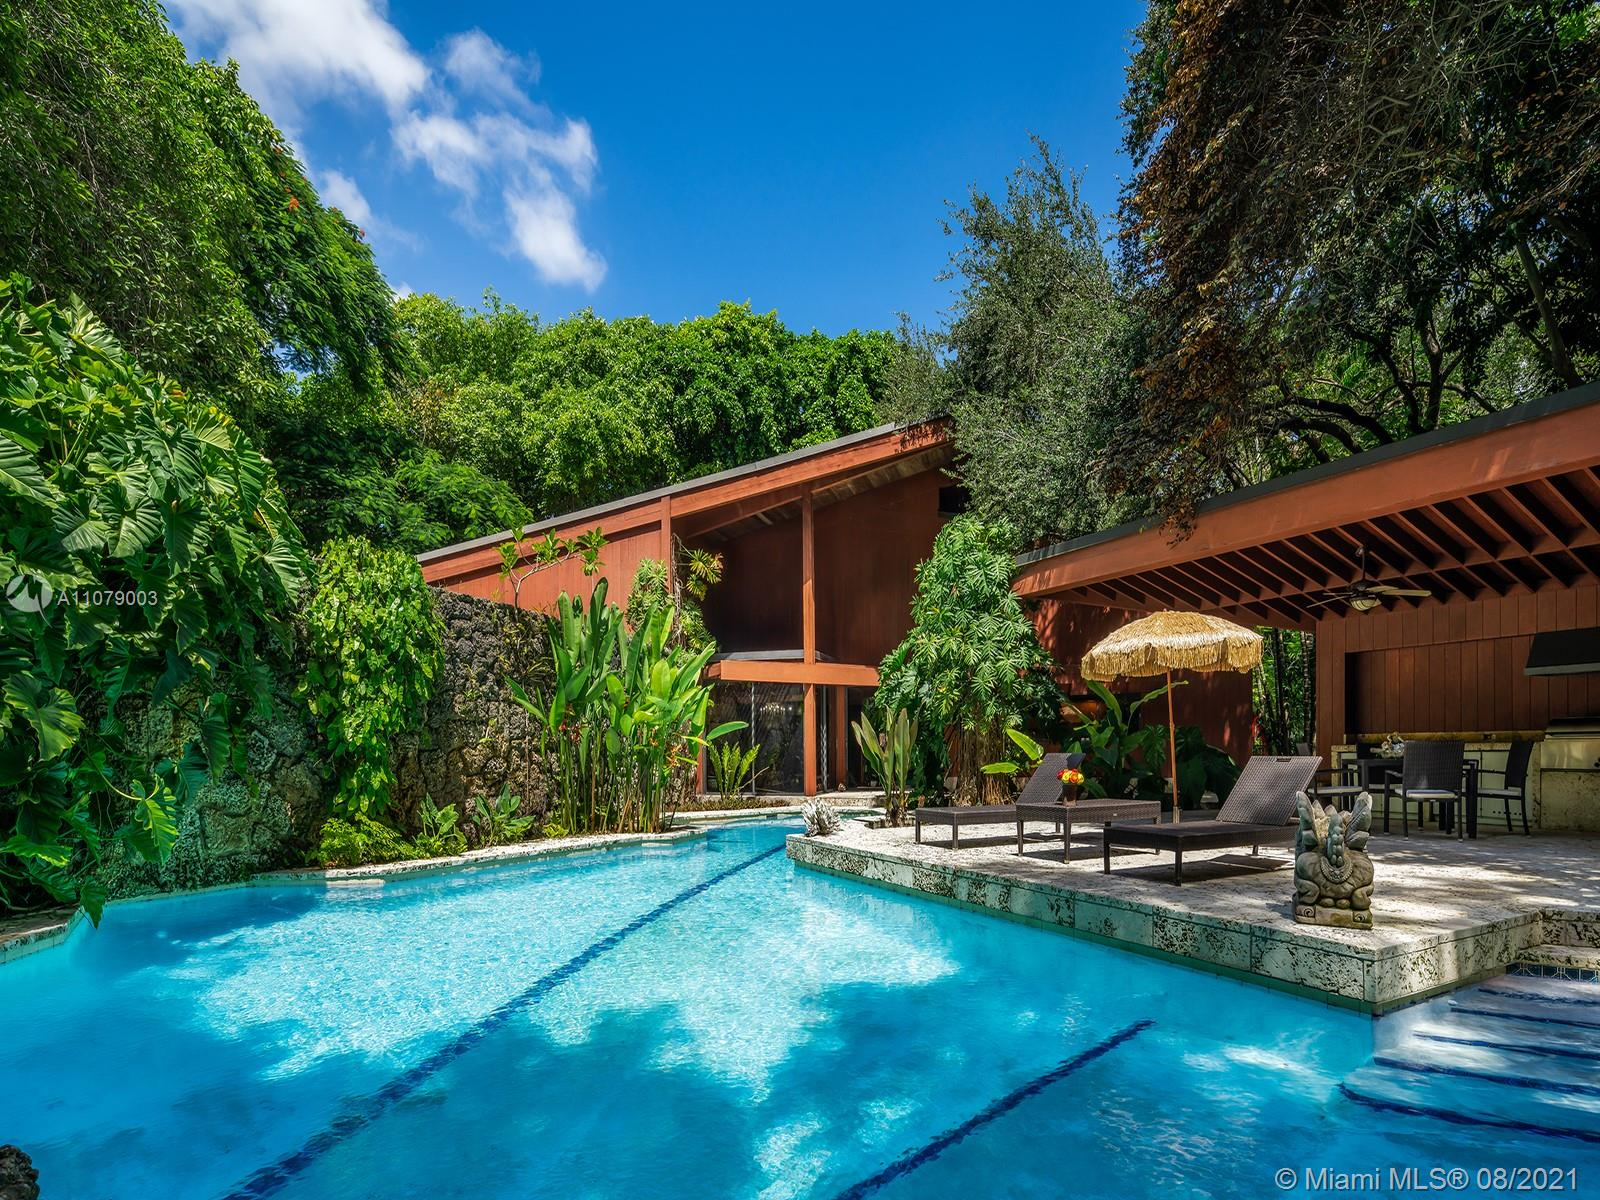 """This iconic Ponce-Davis home, designed by renowned Miami architect Chayo Frank as his personal residence, embraces the natural jungle environment that surrounds it, creating a truly unique and one-of-a-kind house which could not be built anywhere but South Florida. With a skeleton of structural steel beams encased in California Redwood, the 5,000 square foot house's vast living room features large windows looking out onto a richly planted garden of tropical and subtropical species. Built in the """"organic"""" architectural style of Frank Lloyd Wright, the house features a freeform pool with 50-foot lap lane, paths winding around coral rock grottos, many terraces, a double-height master bedroom, an impressive guest suite, and a tree-house-like office accessed by ladder."""